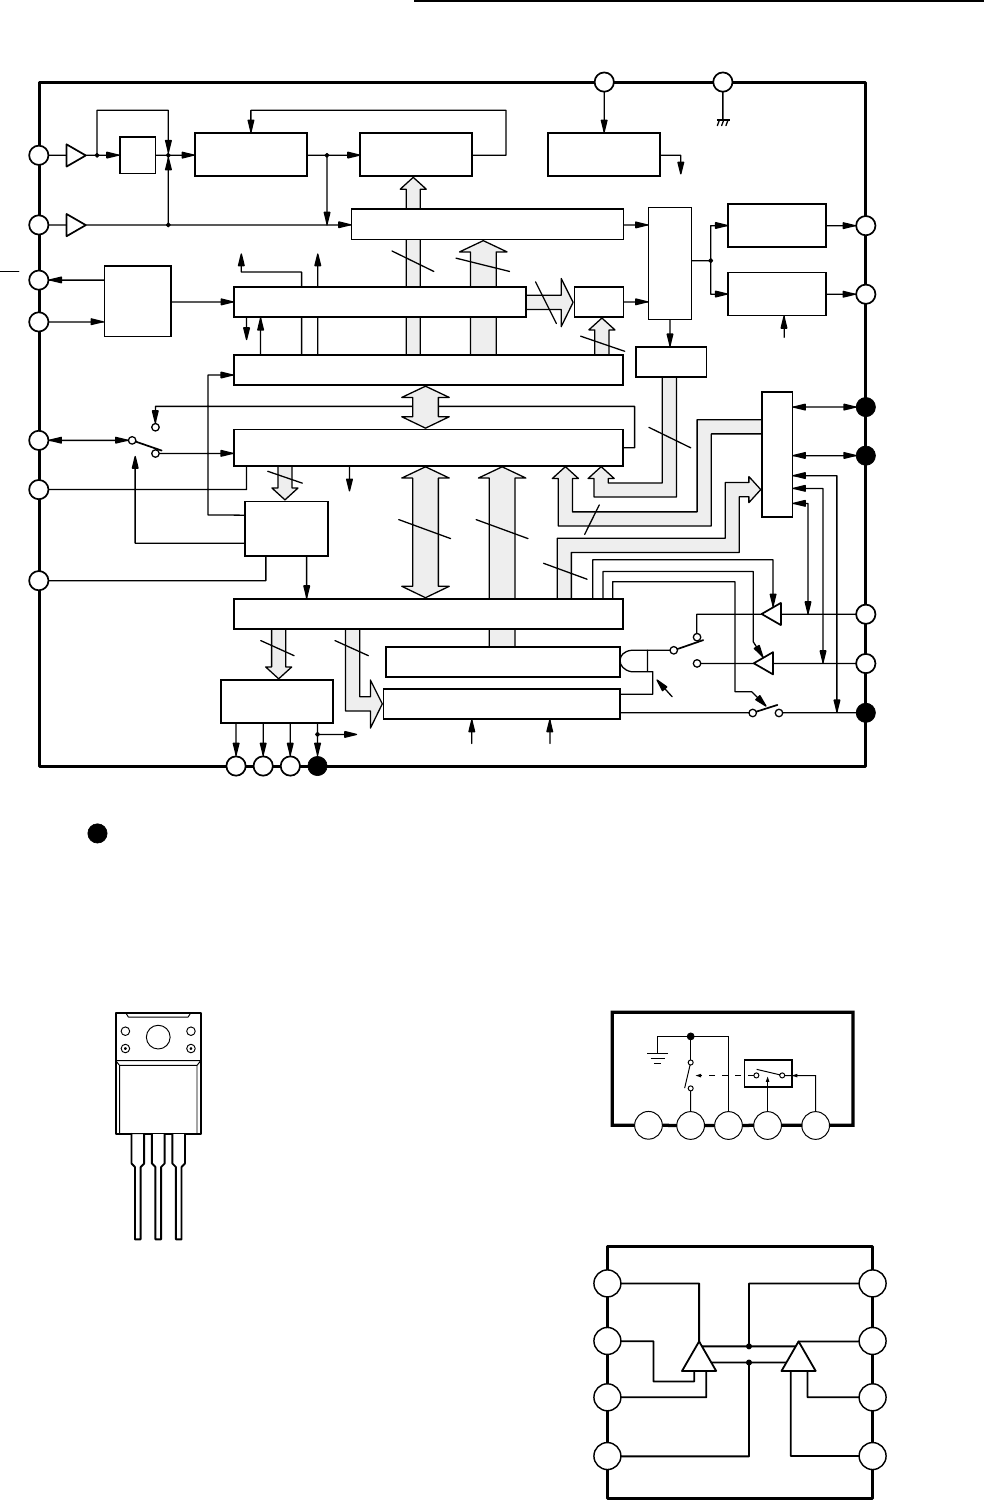 Sm5810571 00 0 Dcmcr300 R4623 Rotary Switch Wiring Diagram 12